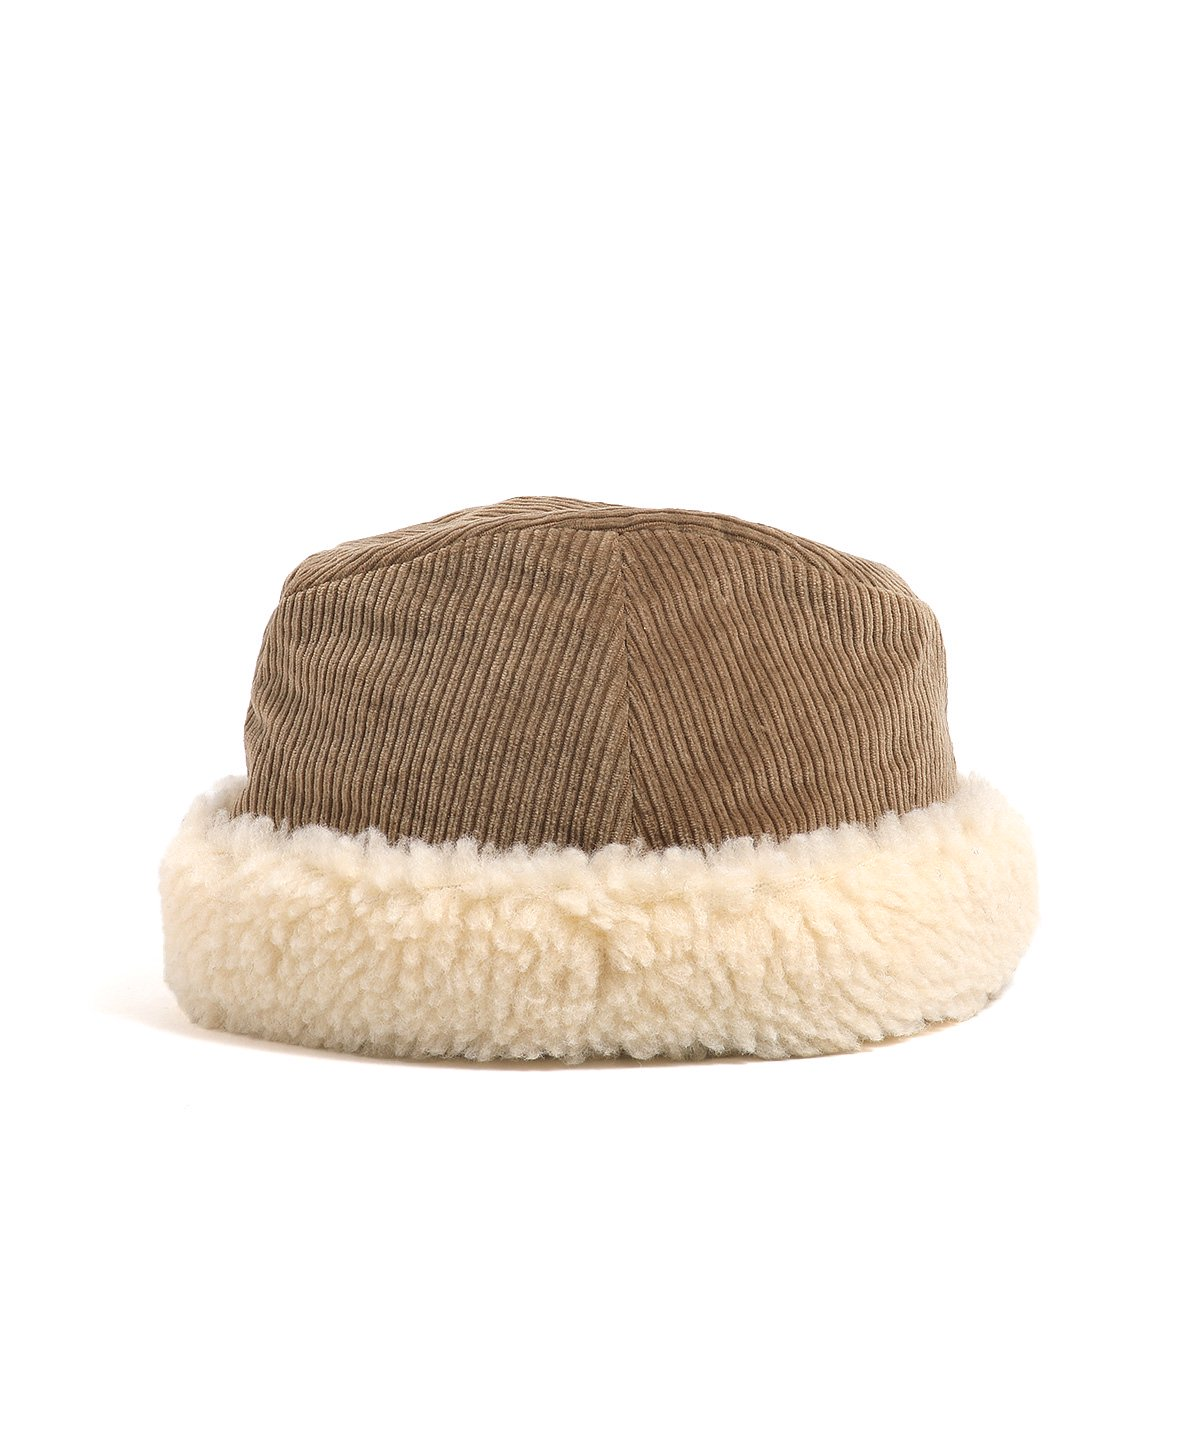 CANADIAN CORD HAT